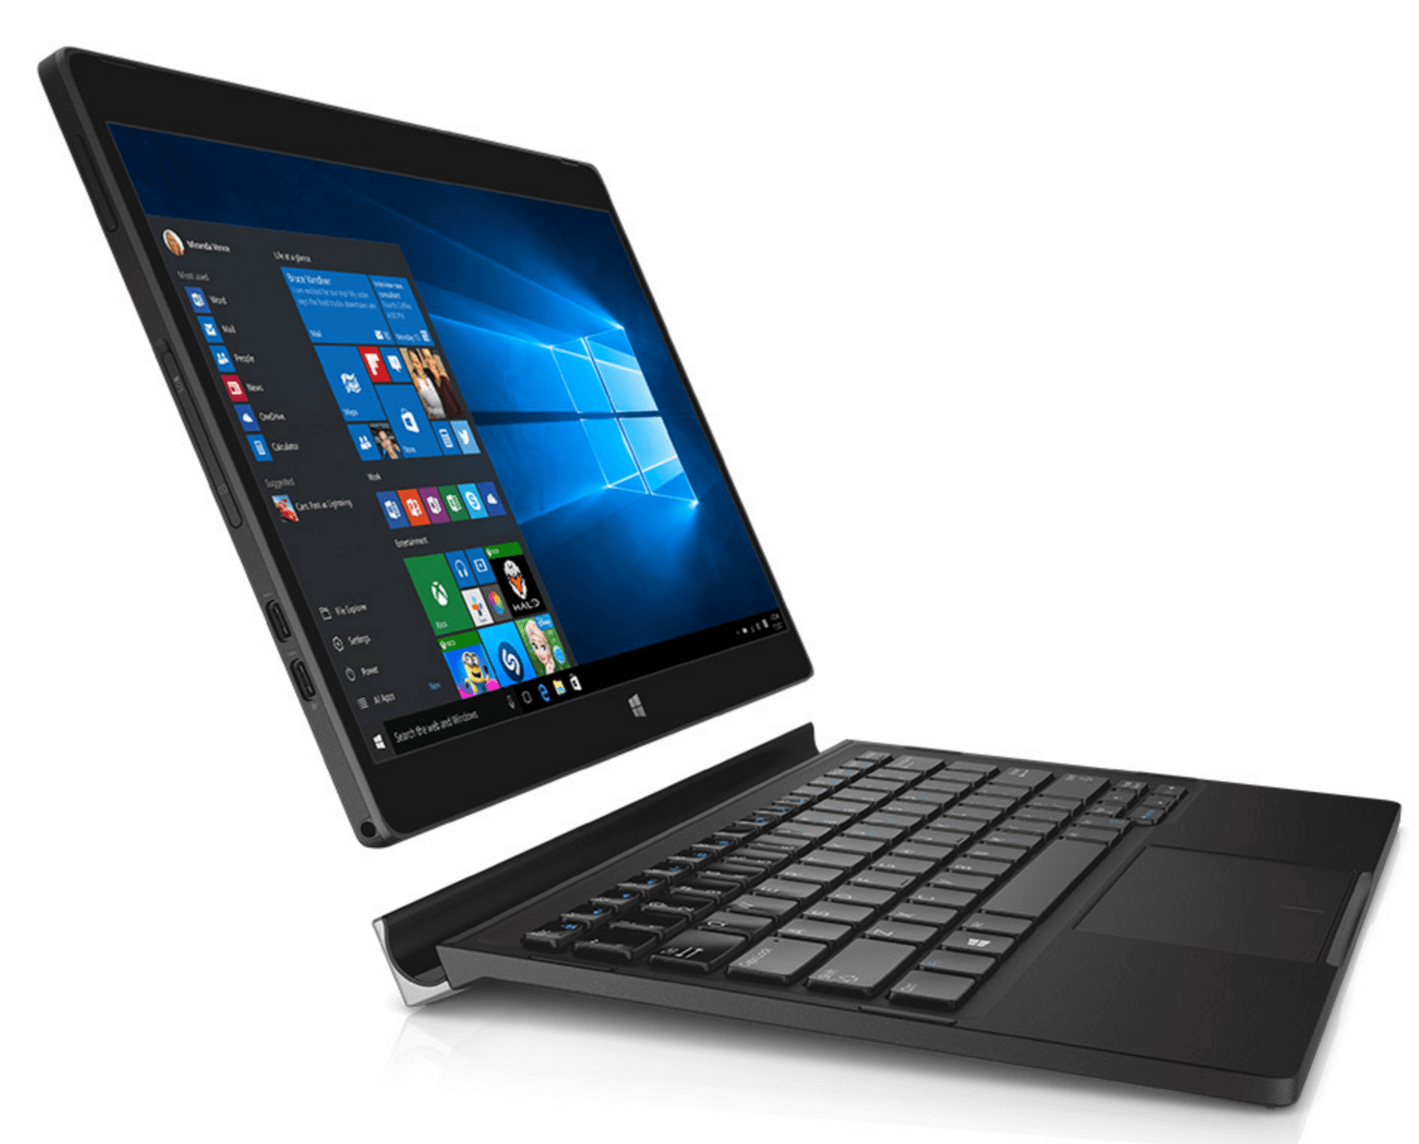 Laptop Tablett Dell Xps 12 2 In 1 Laptop Or Tablet Review Geek News